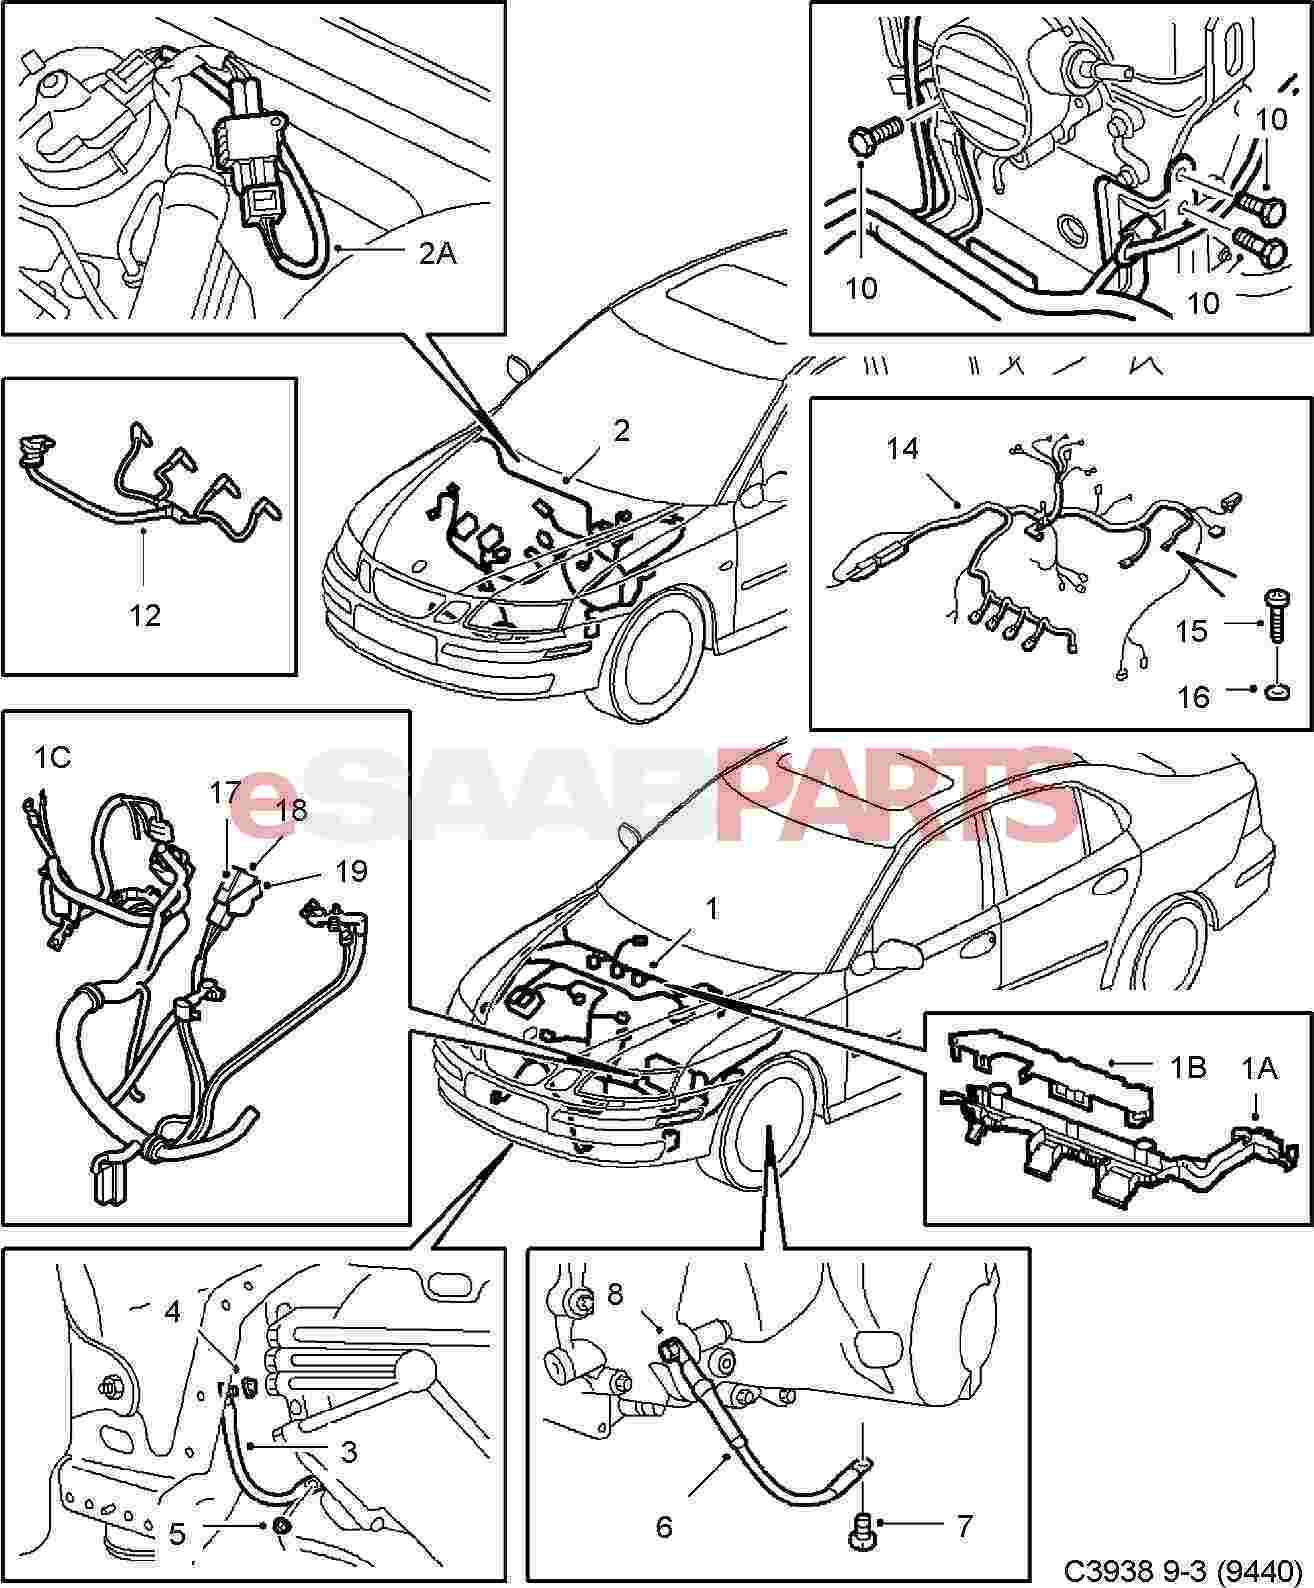 Excellent Saab 9 3 Wiring Harness Wiring Library Wiring Digital Resources Cettecompassionincorg